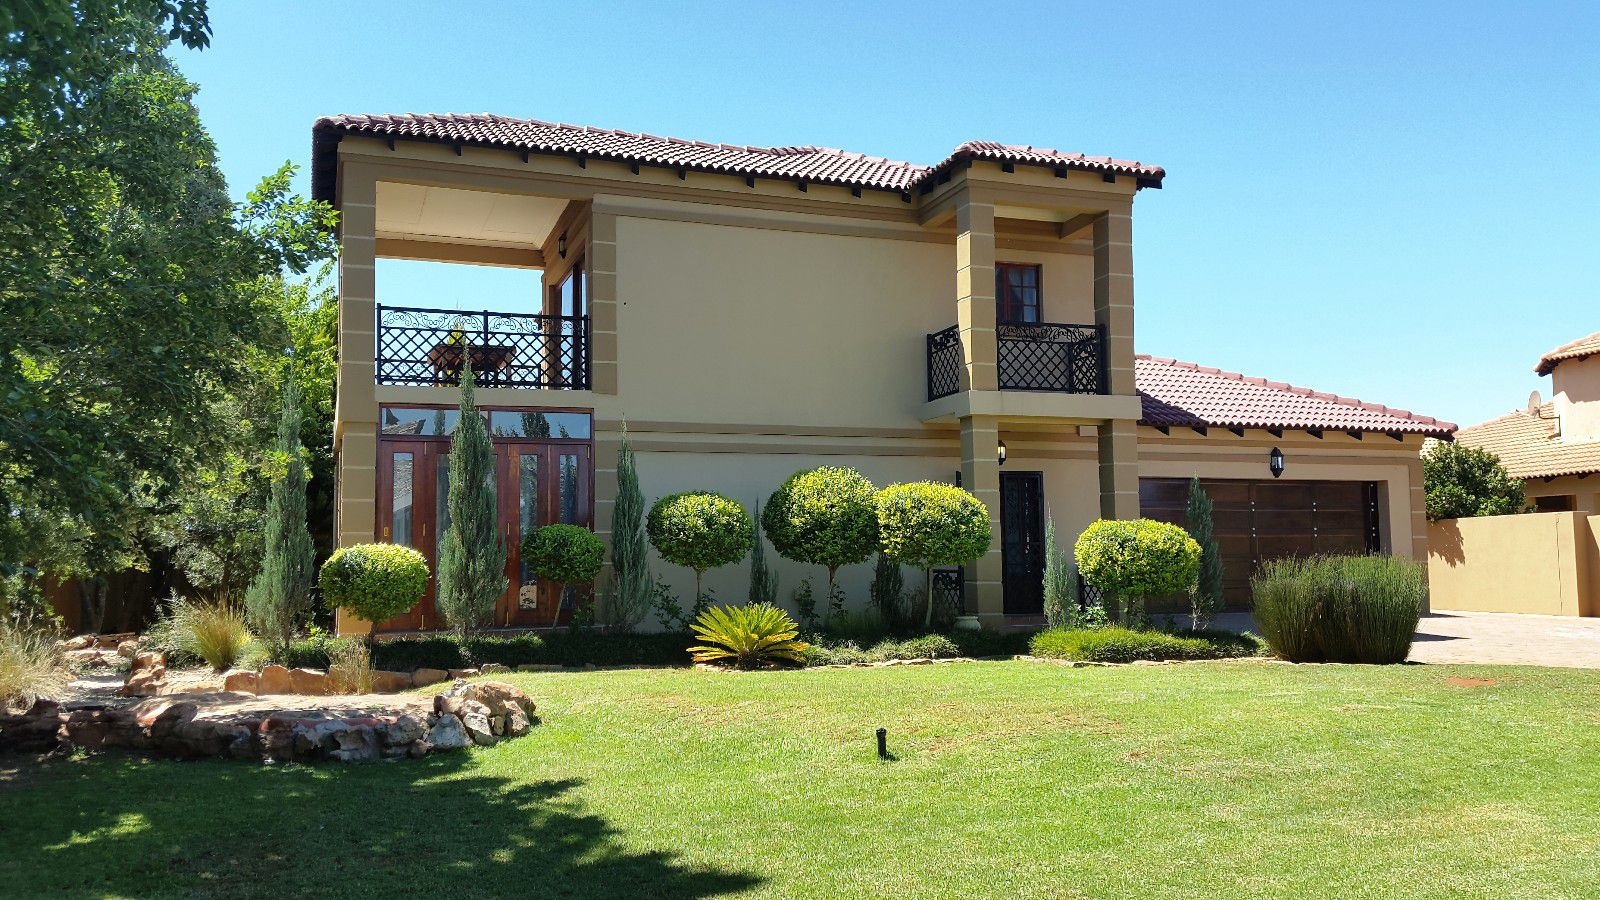 Potchefstroom tuscany ridge property houses for sale for Tuscany houses